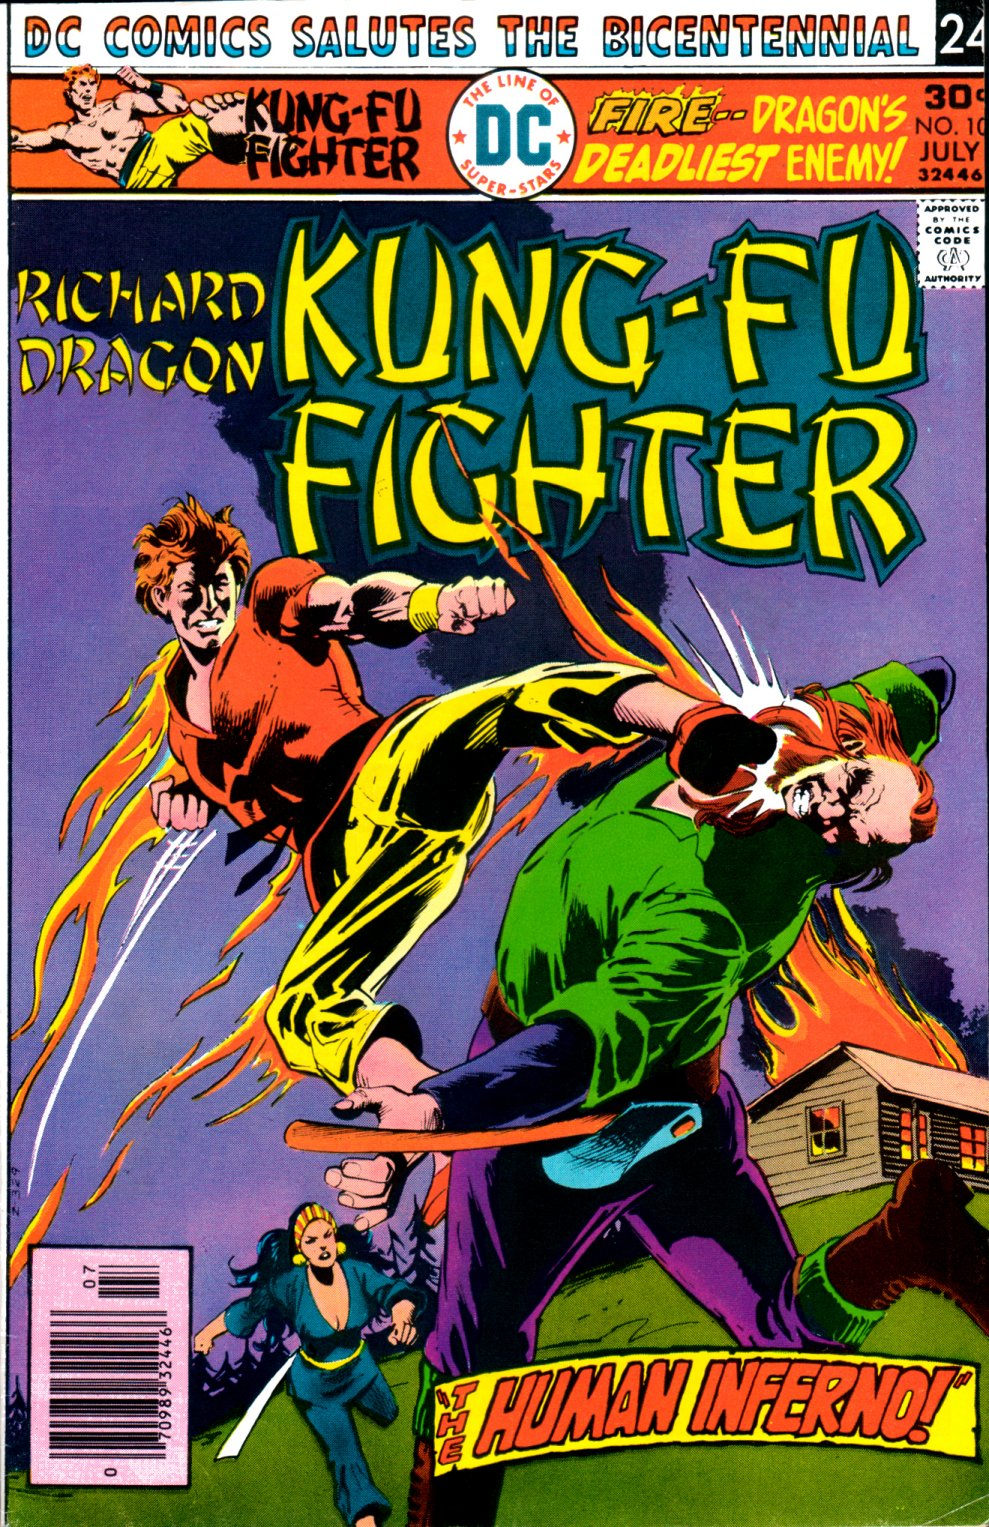 Richard Dragon, Kung-Fu Fighter 10 Page 1